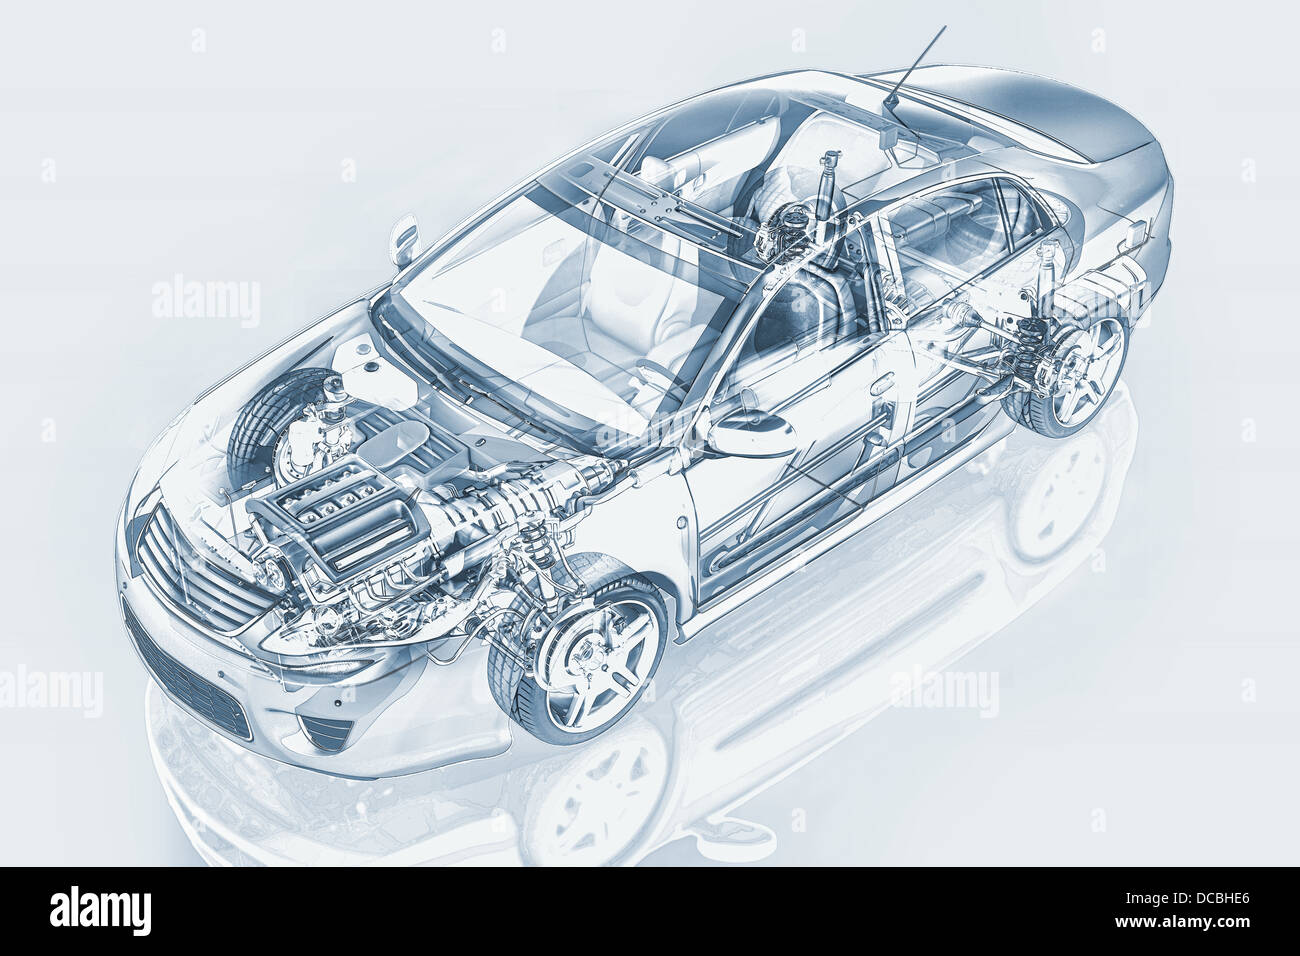 Generic sedan car detailed cutaway representation, with ghost effect, in pencil drawing style, on neutral background. - Stock Image